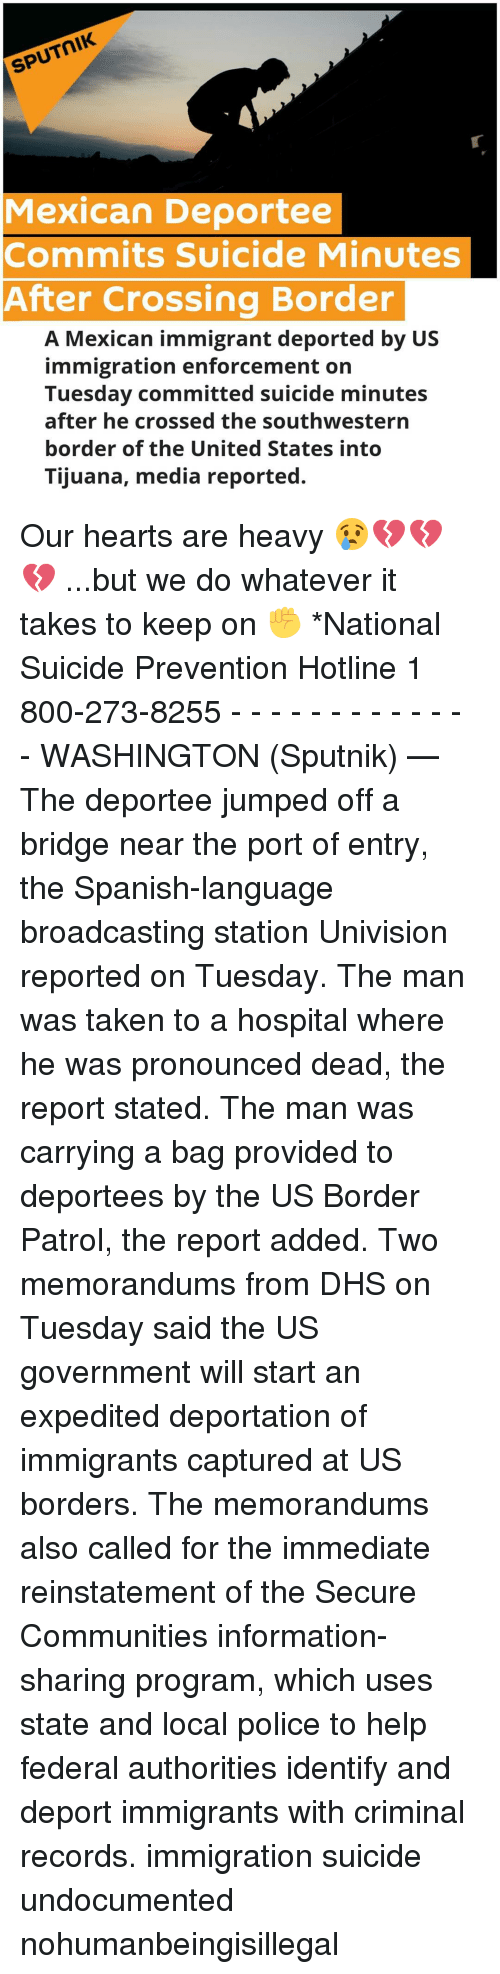 reinstation: SPUTNIK  Mexican Deportee  Commits Suicide Minutes  After Crossing Border  A Mexican immigrant deported by US  immigration enforcement on  Tuesday committed suicide minutes  after he crossed the southwestern  border of the United States into  Tijuana, media reported. Our hearts are heavy 😢💔💔💔 ...but we do whatever it takes to keep on ✊ *National Suicide Prevention Hotline 1 800-273-8255 - - - - - - - - - - - - - WASHINGTON (Sputnik) — The deportee jumped off a bridge near the port of entry, the Spanish-language broadcasting station Univision reported on Tuesday. The man was taken to a hospital where he was pronounced dead, the report stated. The man was carrying a bag provided to deportees by the US Border Patrol, the report added. Two memorandums from DHS on Tuesday said the US government will start an expedited deportation of immigrants captured at US borders. The memorandums also called for the immediate reinstatement of the Secure Communities information-sharing program, which uses state and local police to help federal authorities identify and deport immigrants with criminal records. immigration suicide undocumented nohumanbeingisillegal